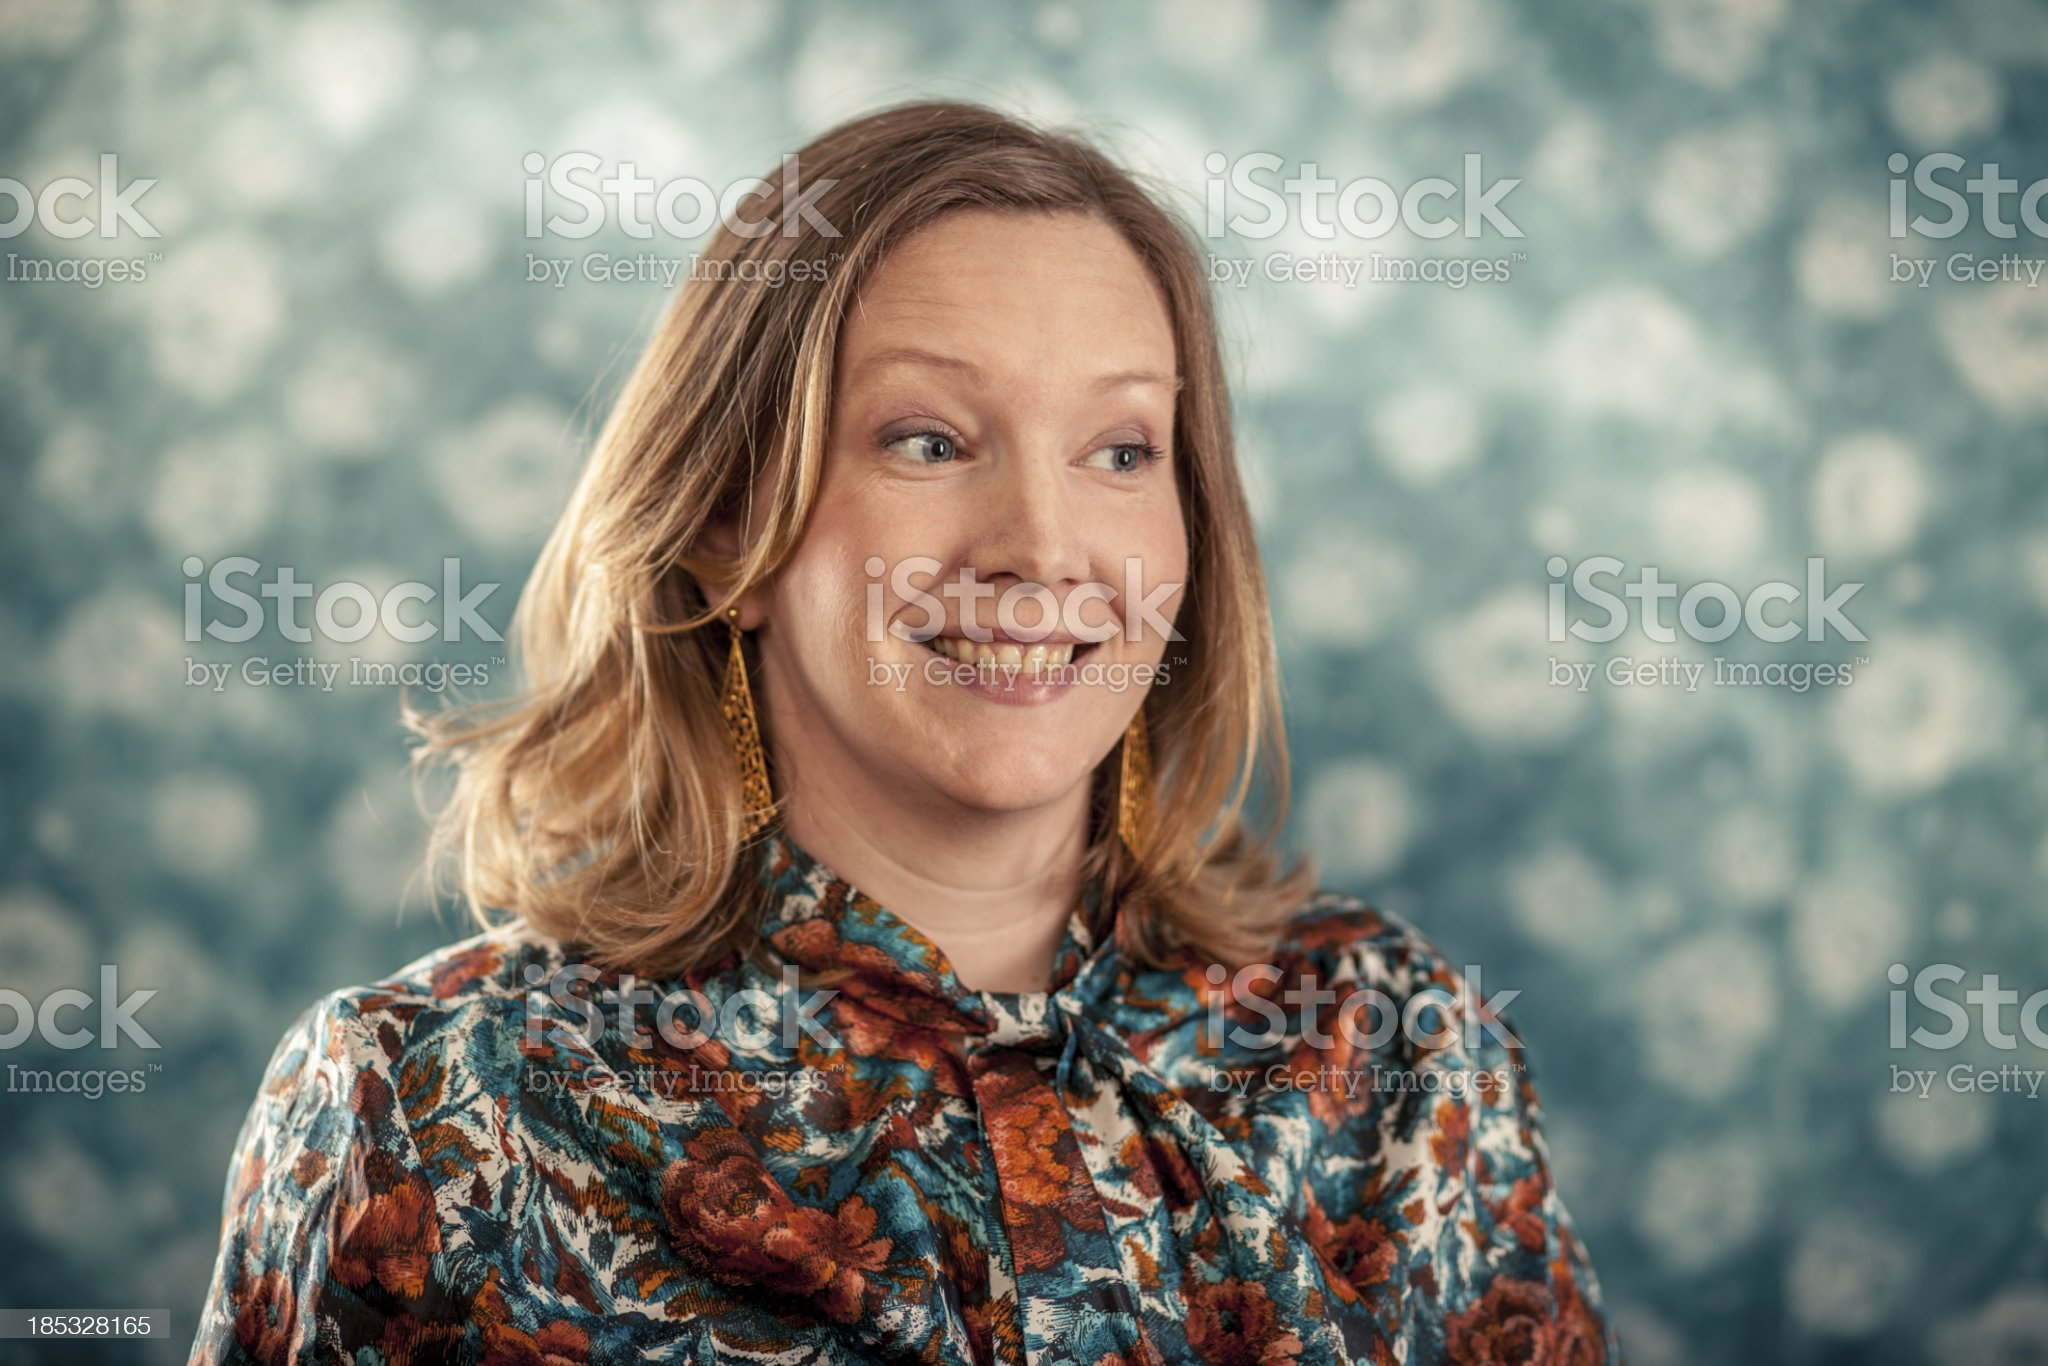 Portrait Photograph of Blond Woman Wearing Flowery Blouse royalty-free stock photo